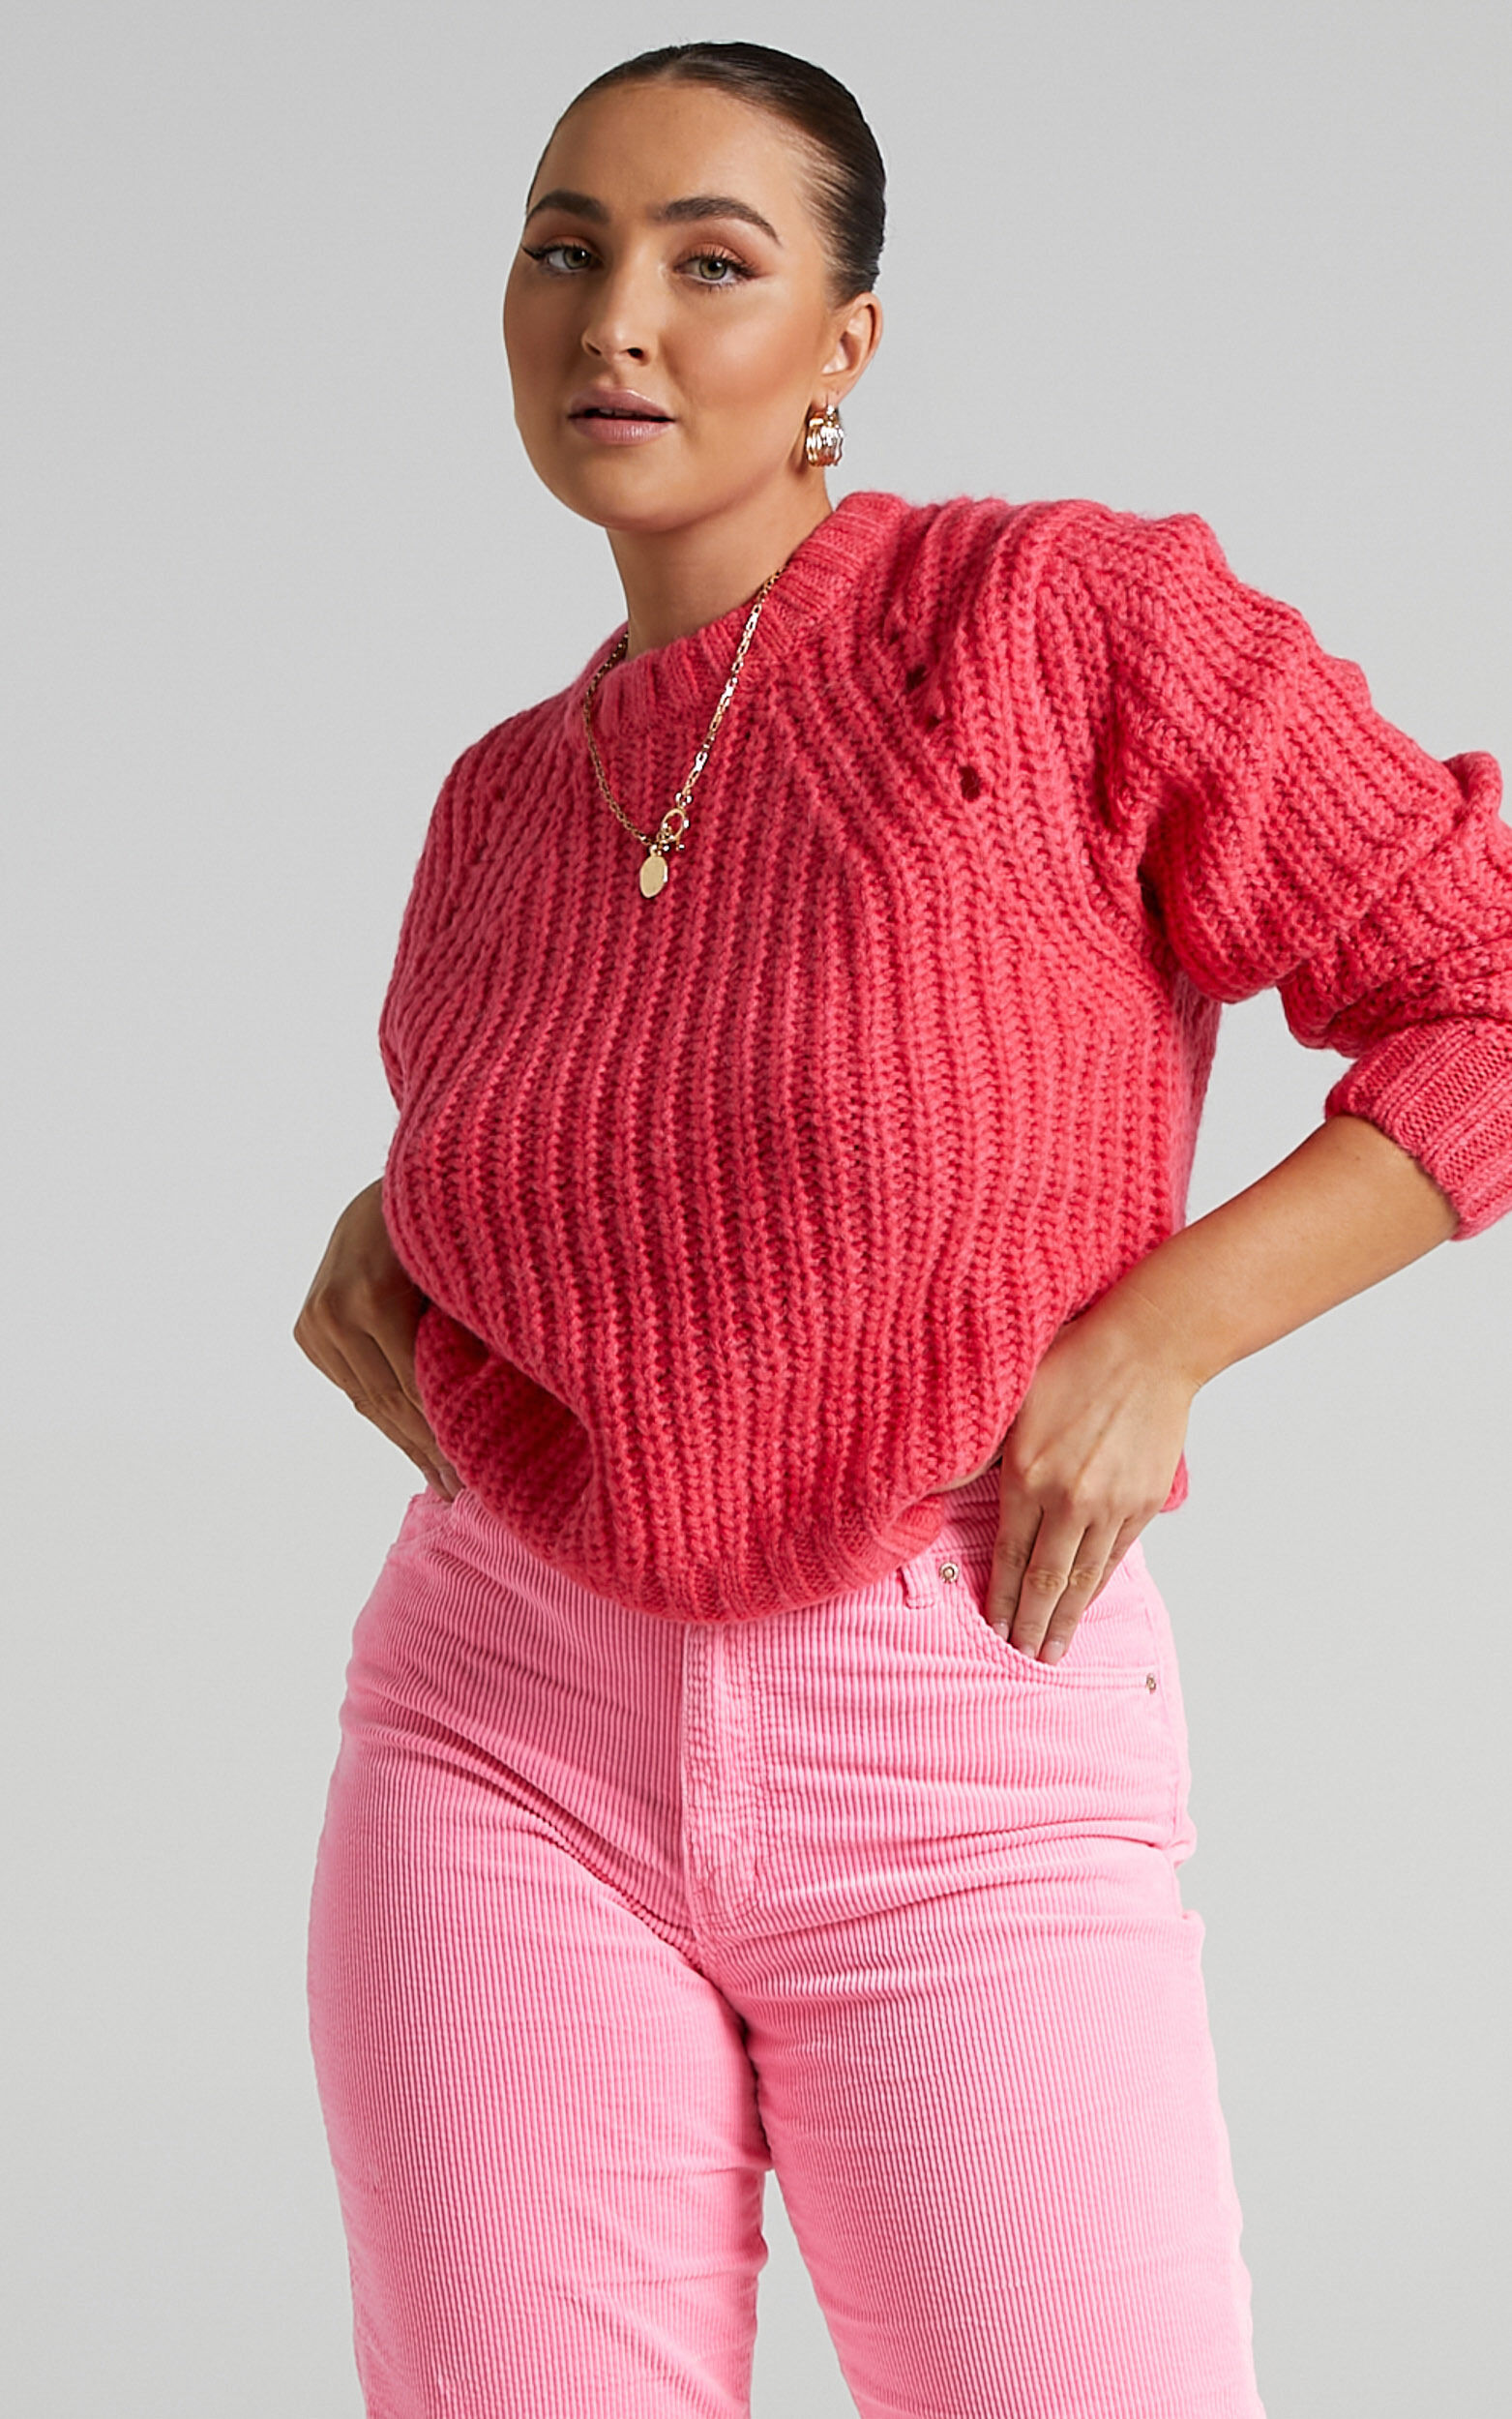 Rollas - Captain Sweater in Pink Cordial - 06, PNK1, super-hi-res image number null